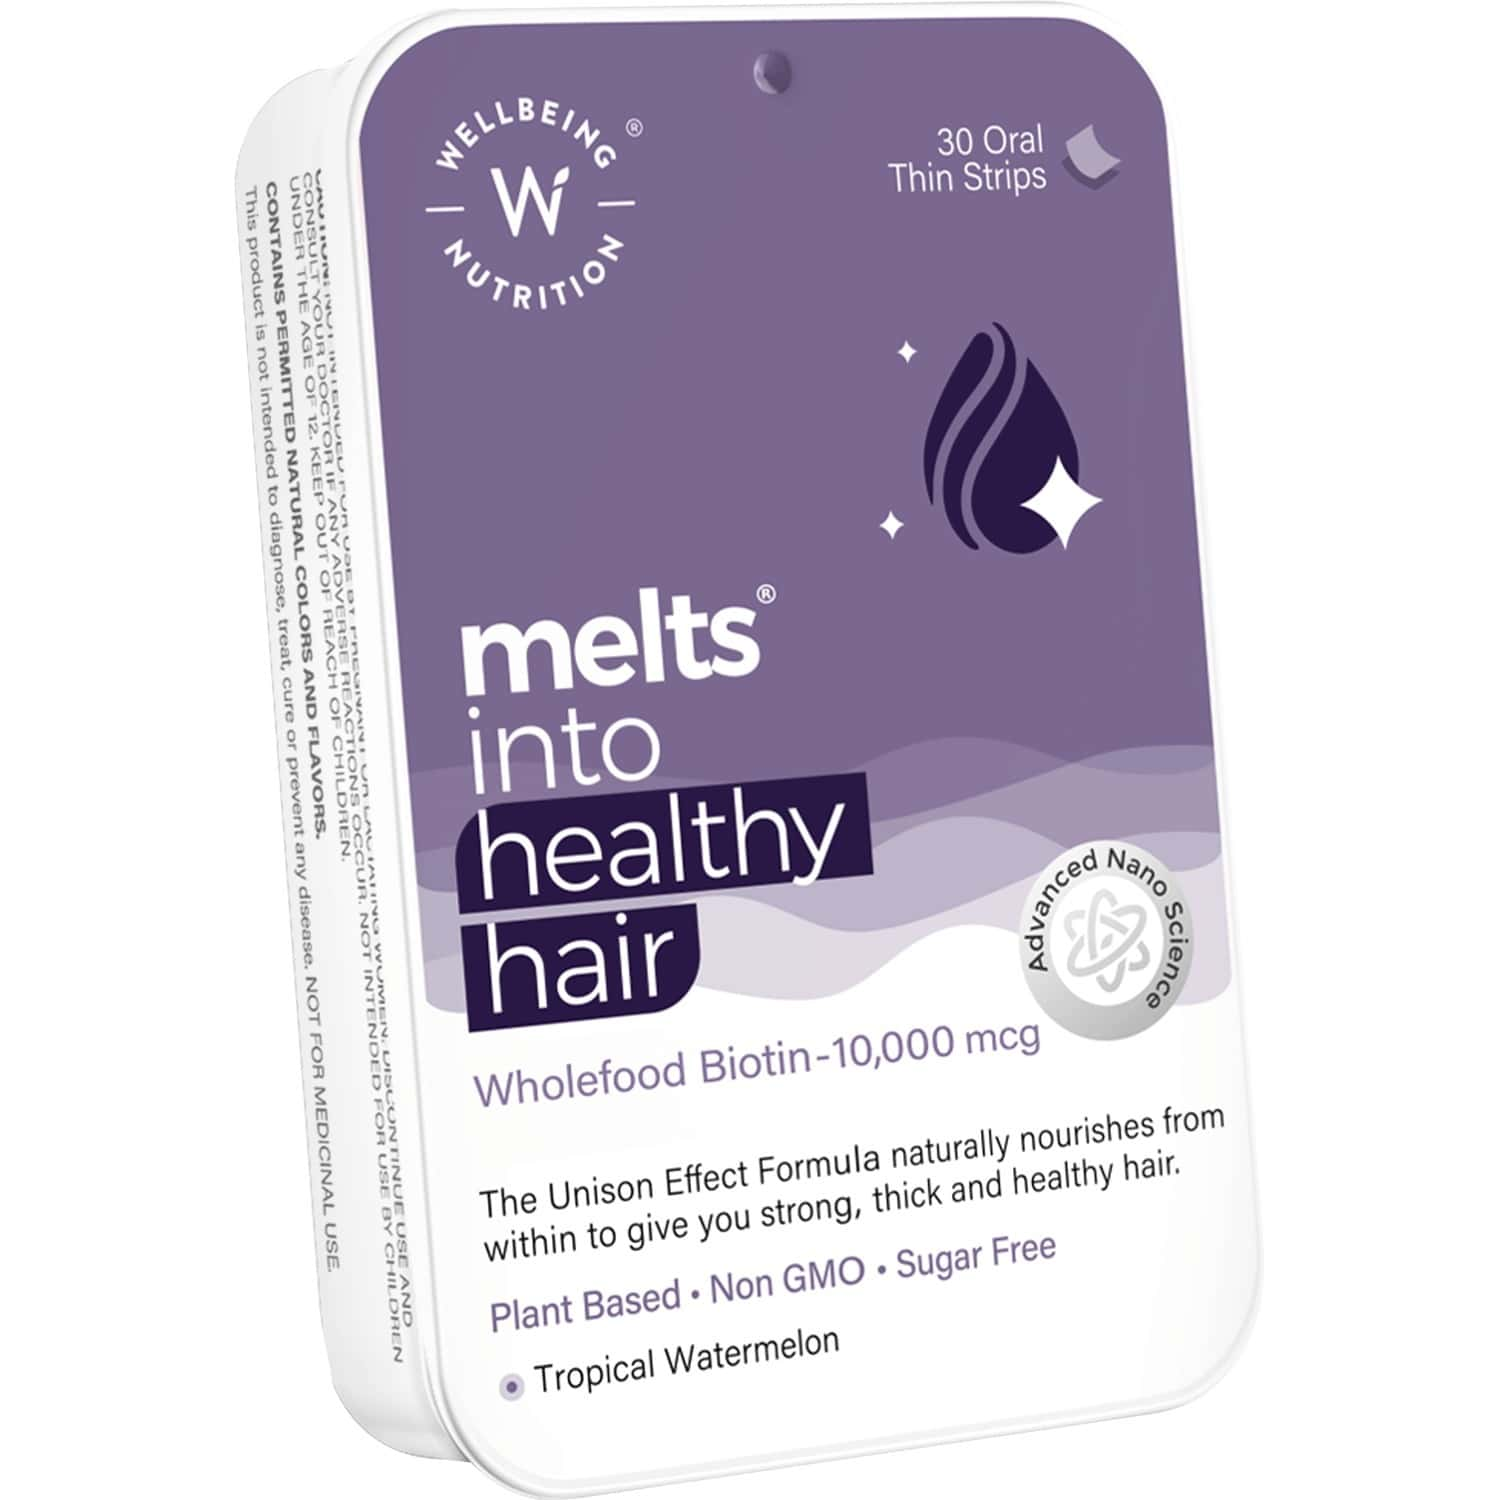 Wellbeing Nutrition Melts Healthy Hair - Plant Based Biotin 10000mcg+ (30 Oral Thin Strips)